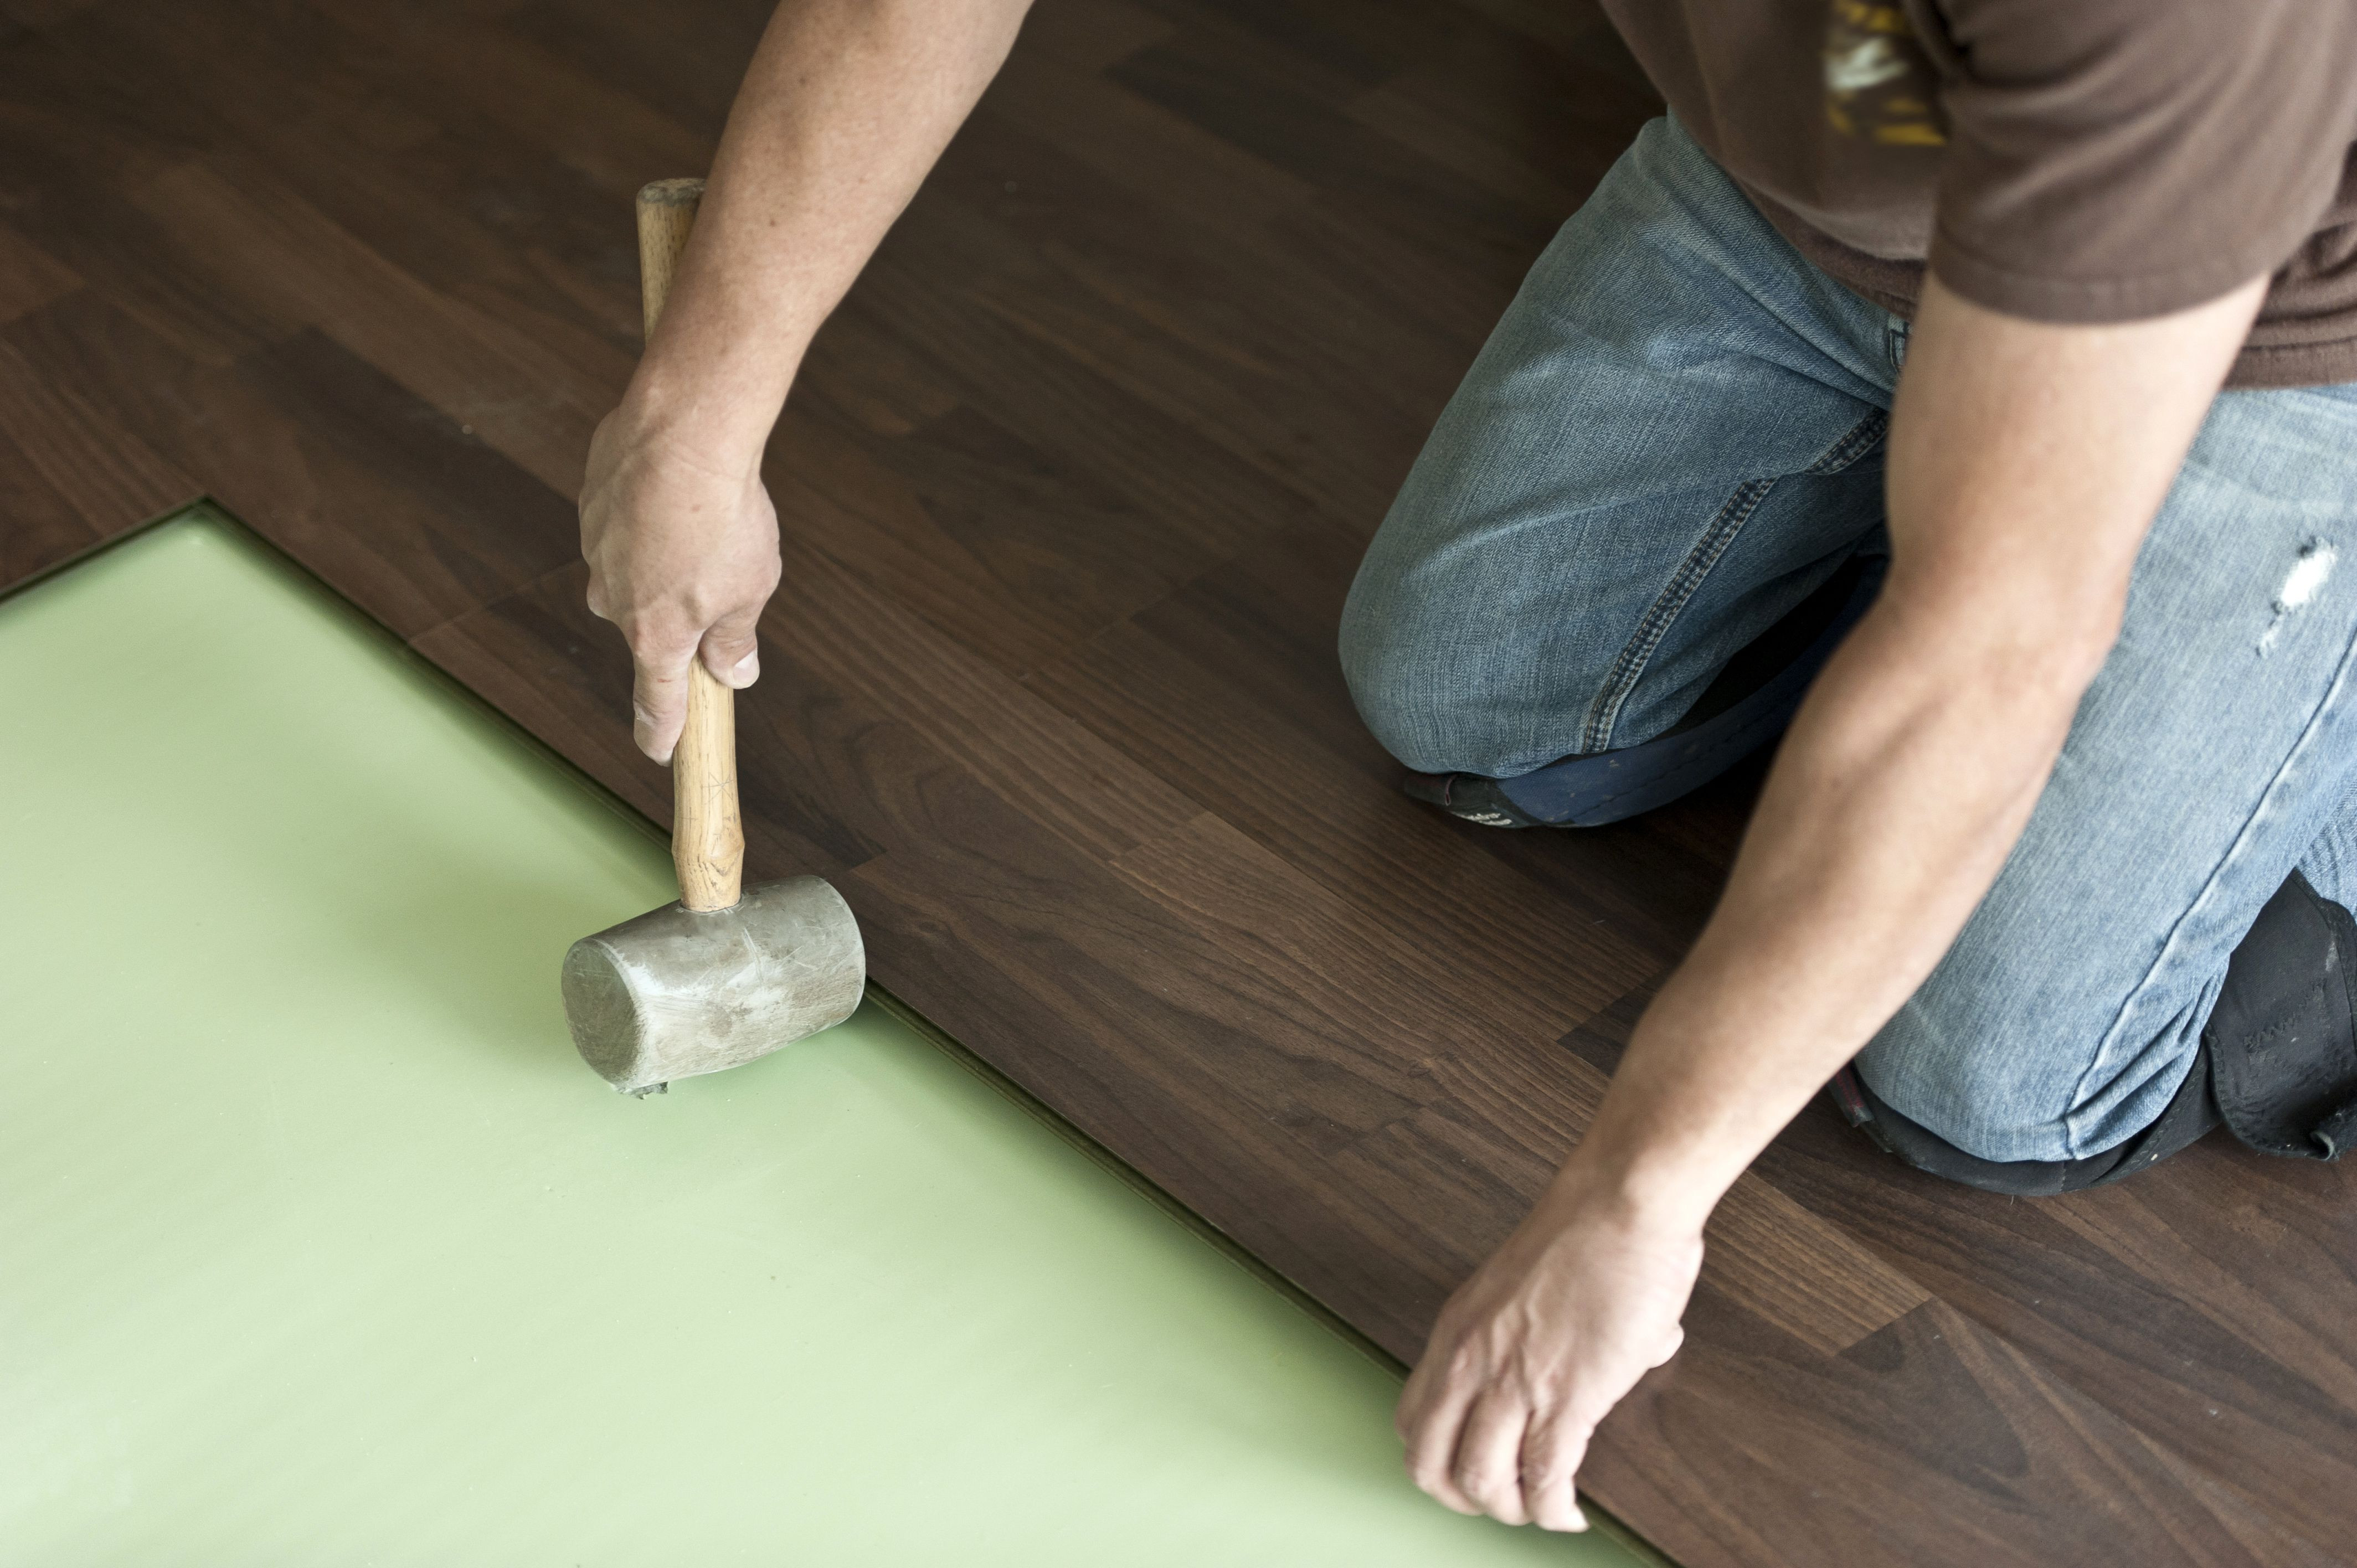 average cost to replace hardwood floors of can a foam pad be use under solid hardwood flooring with regard to installing hardwood floor 155149312 57e967d45f9b586c35ade84a